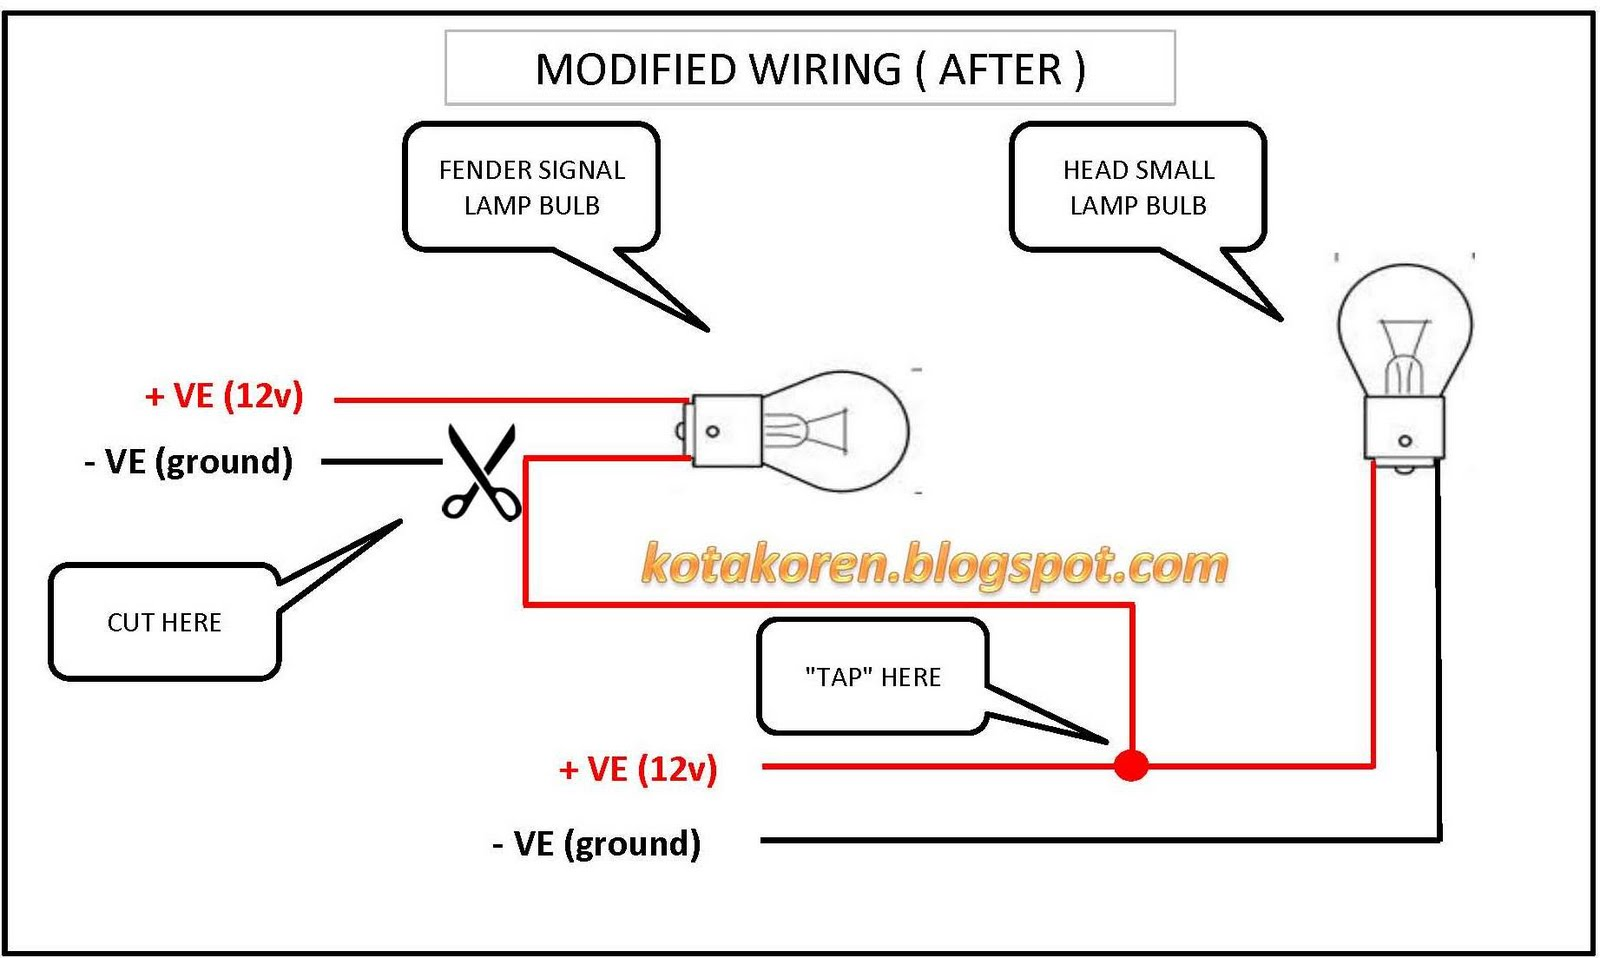 Wiring Diagram Lampu Depan Wire Data Schema Power Window Wira Kereta Center U2022 Rh 108 61 128 68 Kata